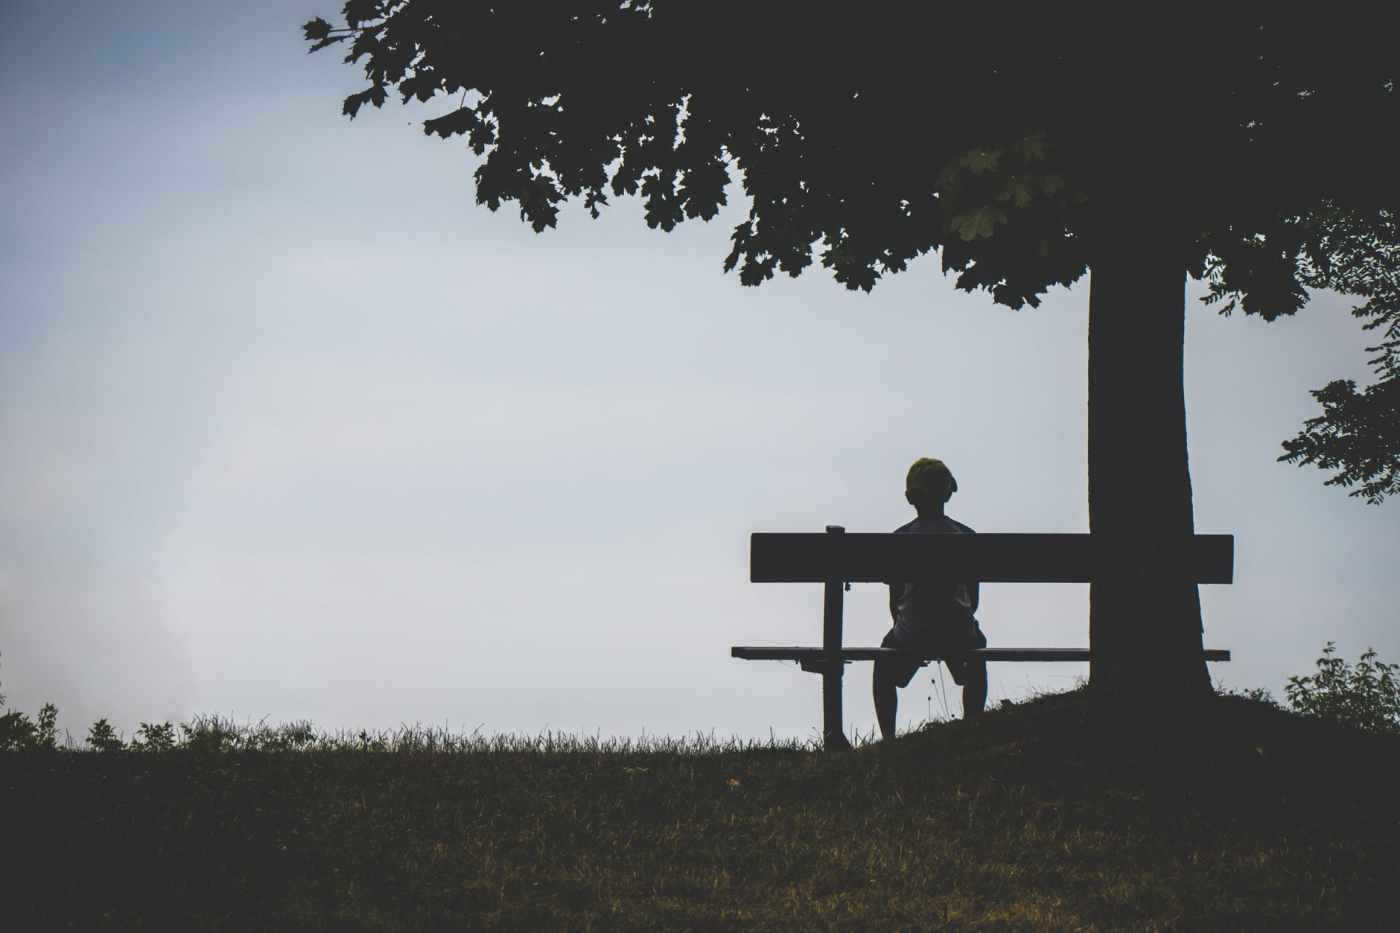 boy on a bench at dusk